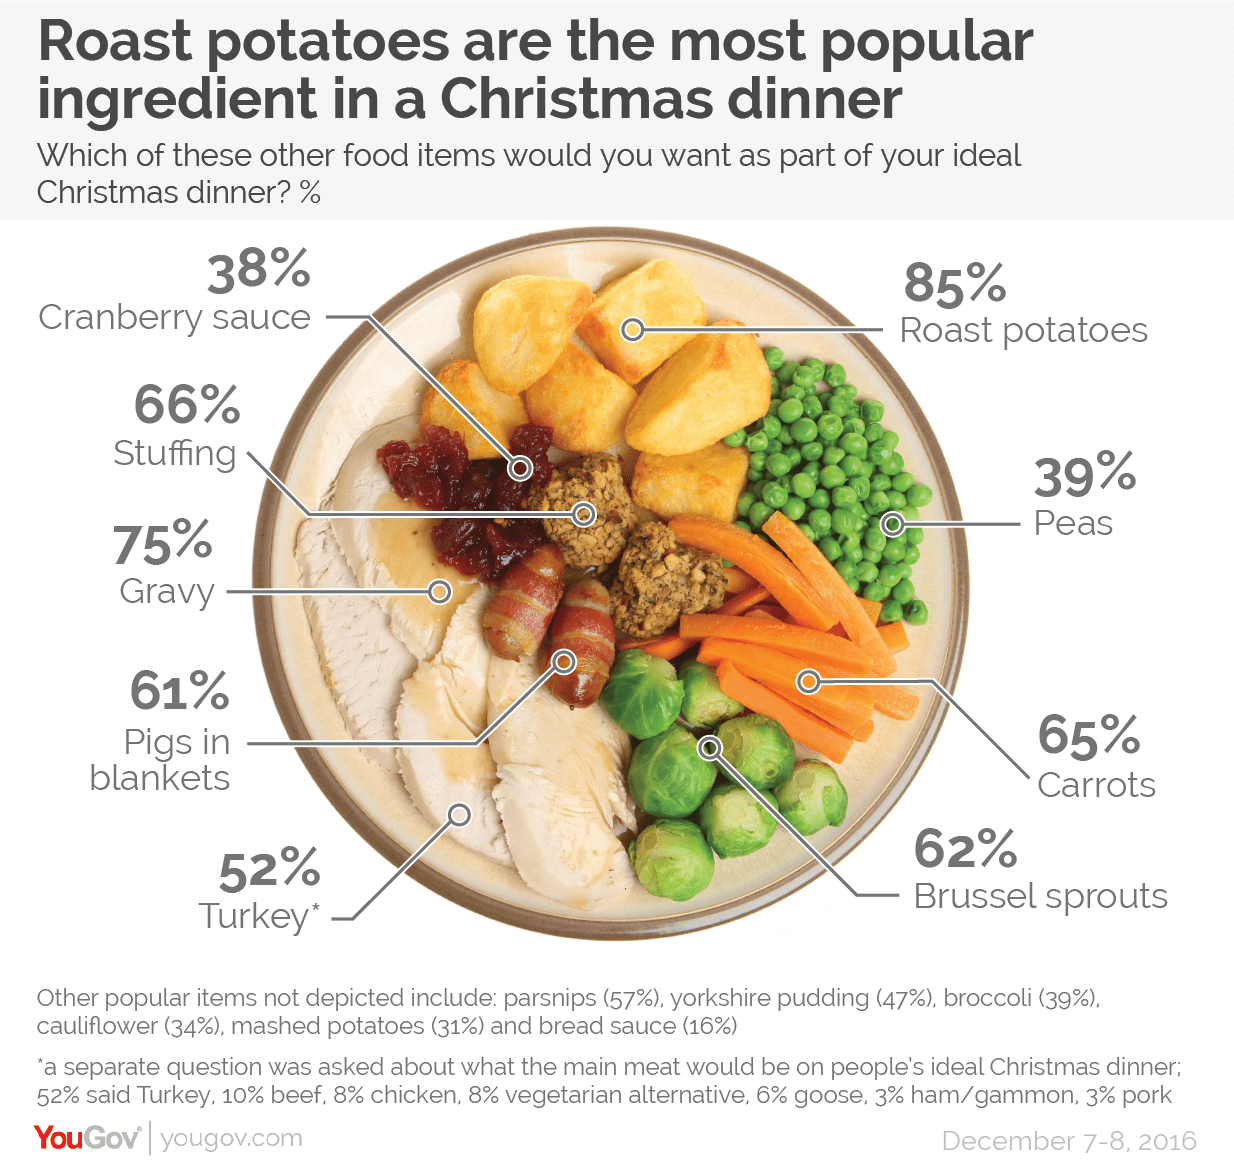 hight resolution of fully 85 of people say that their ideal christmas dinner would contain roast potatoes